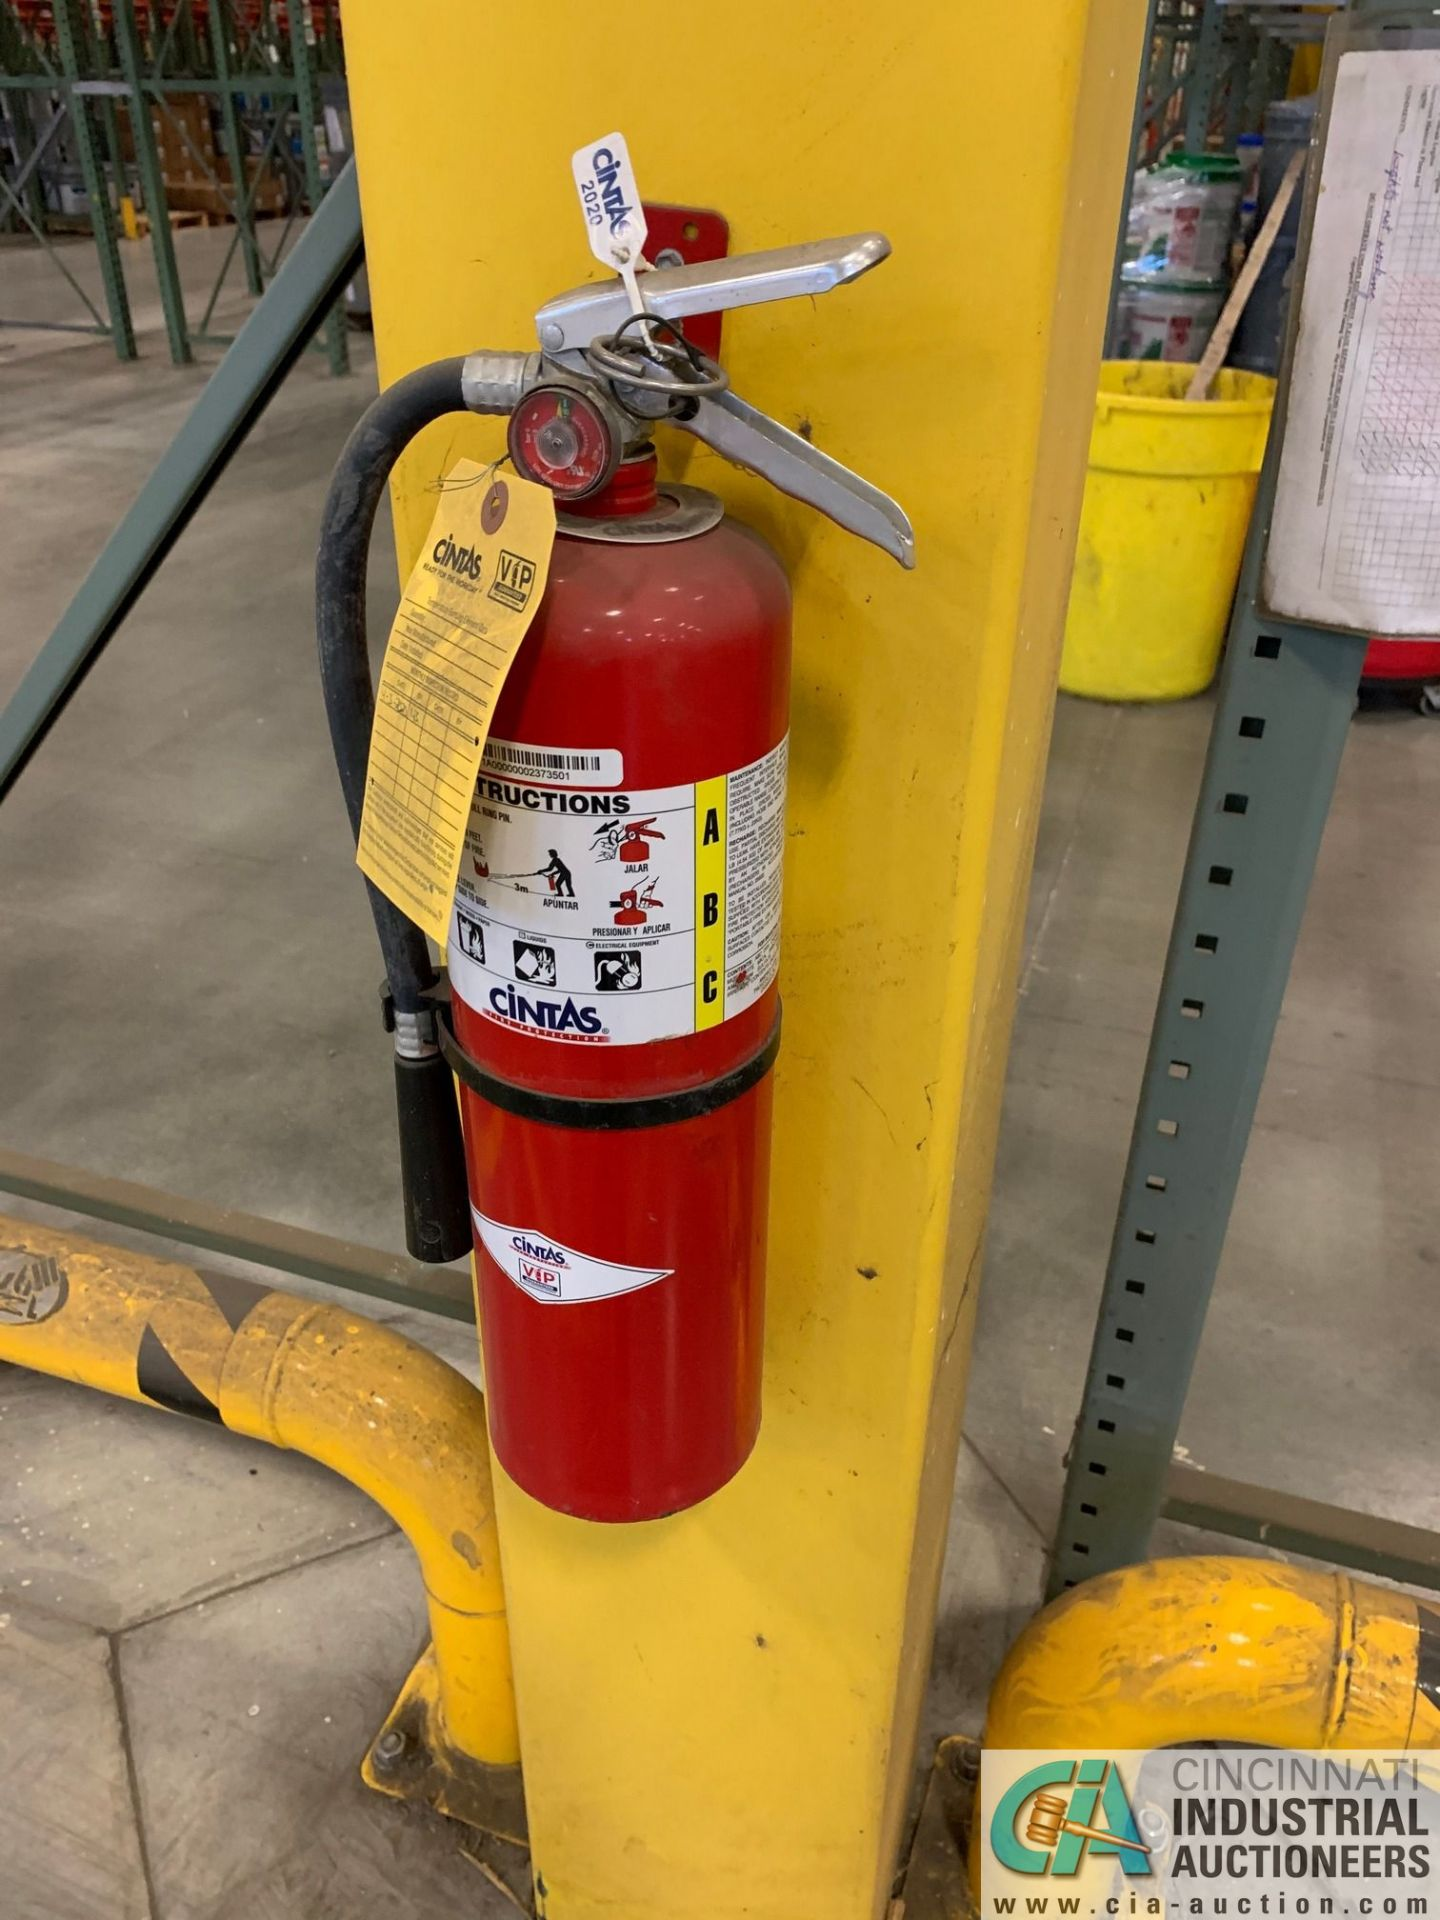 APPROX. (50) FIRE EXTINGUISHER (5400 OAKLEY INDUSTRIAL BLVD., FAIRBURN, GA 30213) - Image 3 of 5